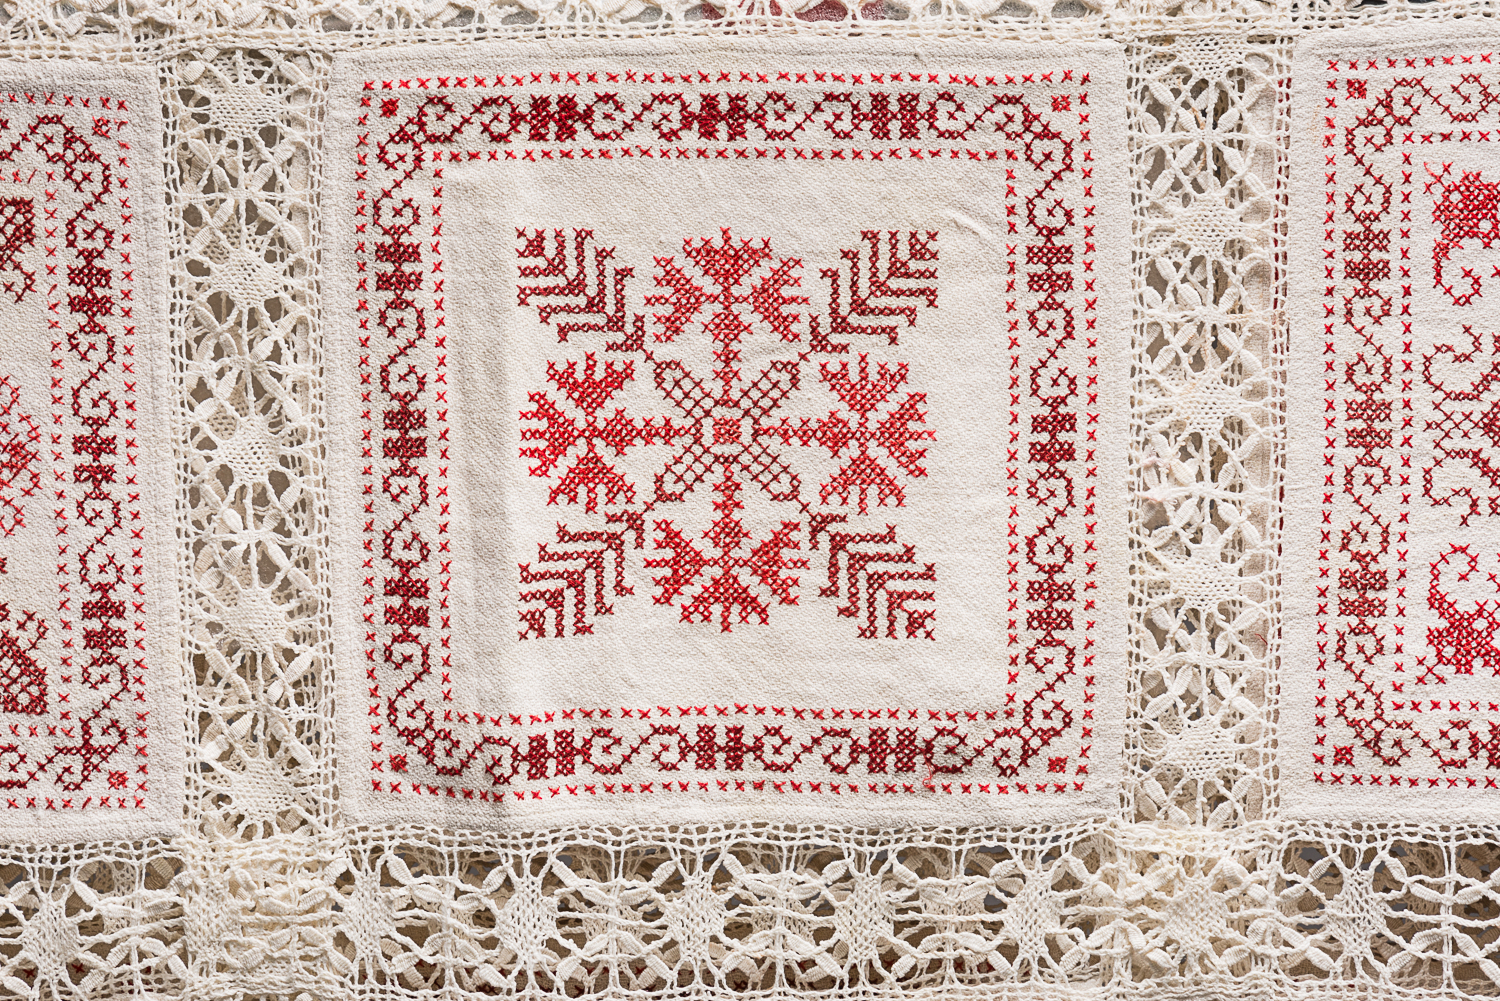 The girls wove the linen, embroidered the squares, and created the lace by hand. (Photo: Peter Berra)